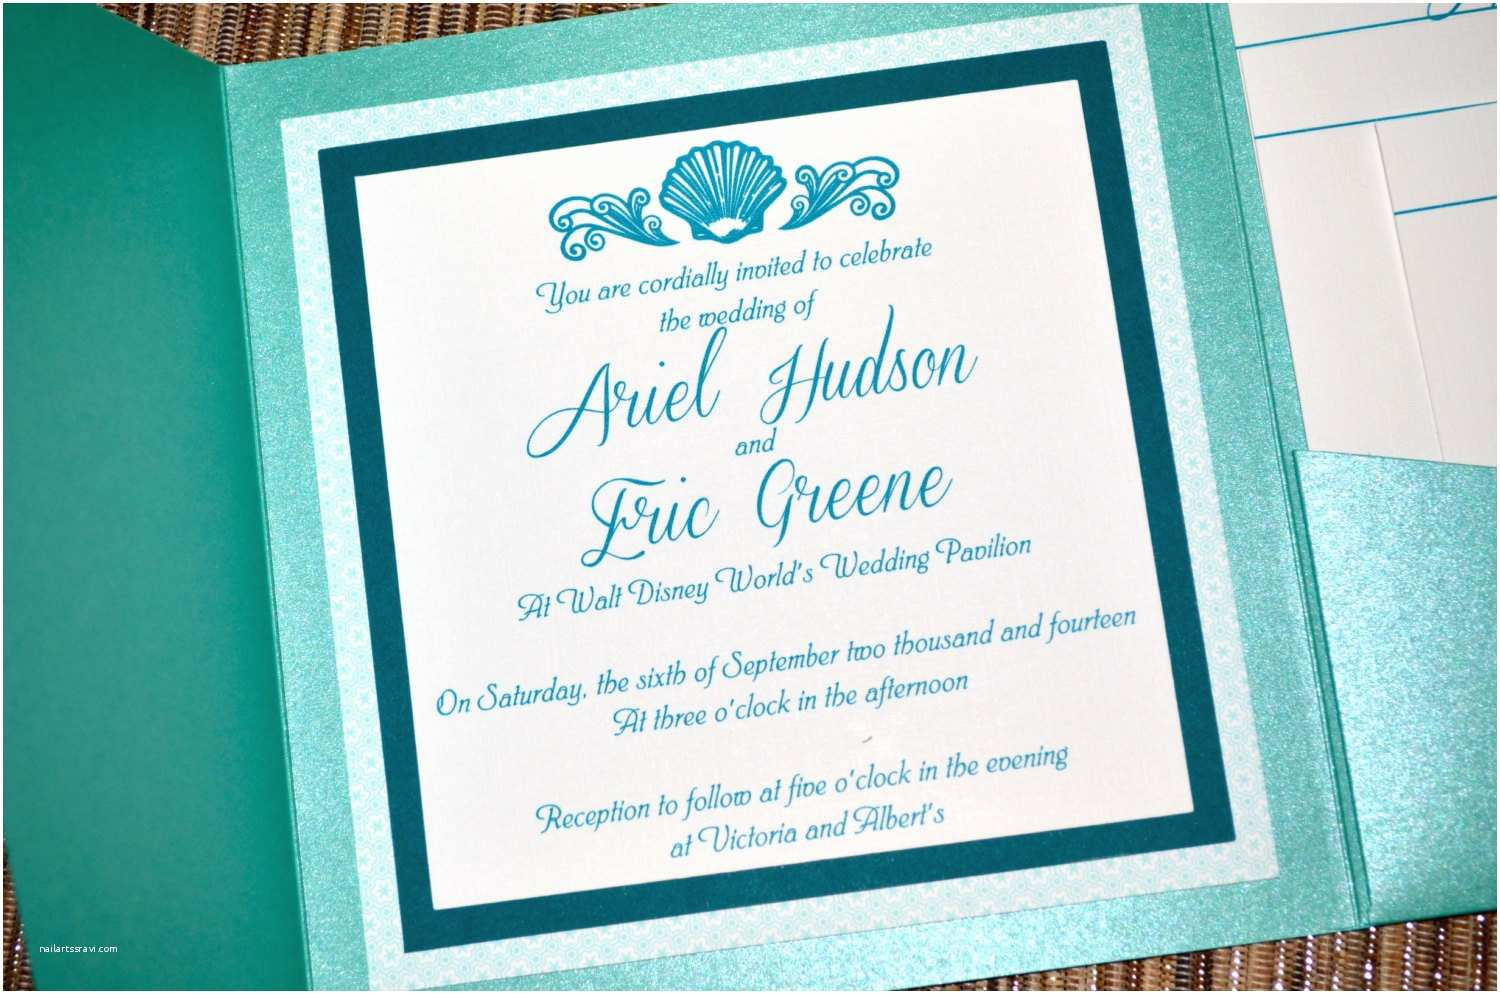 Fairy Tale Wedding Invitations Fairy Tale Wedding Invitations the Little Mermaid Pocket